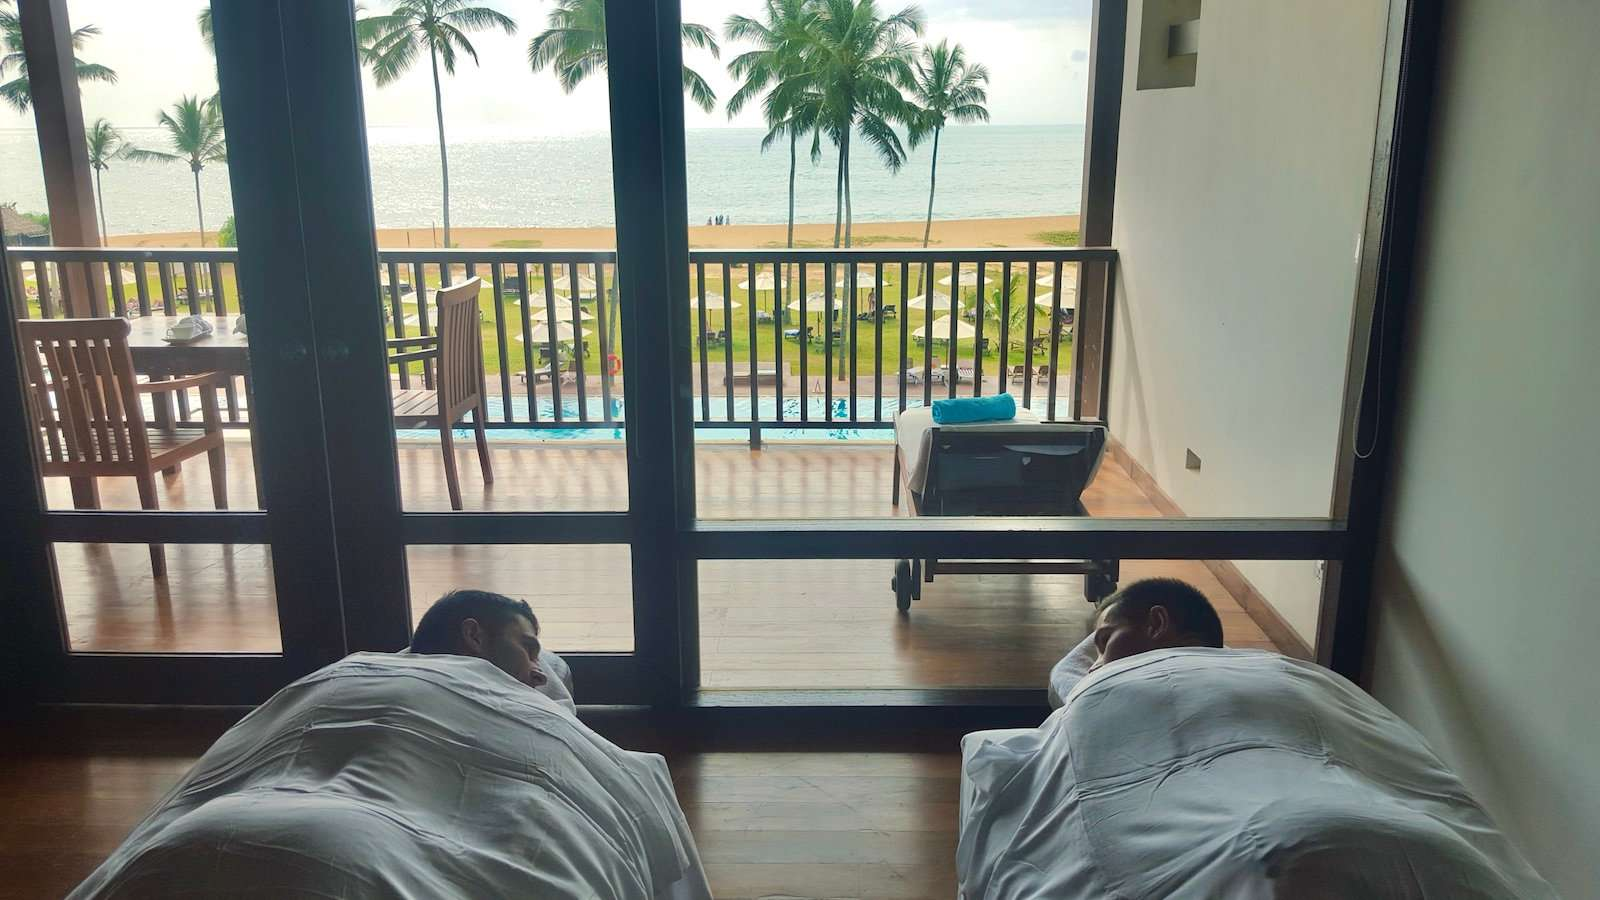 There aren't really any gay saunas or spas in Negombo, but you can still have a relaxing massage